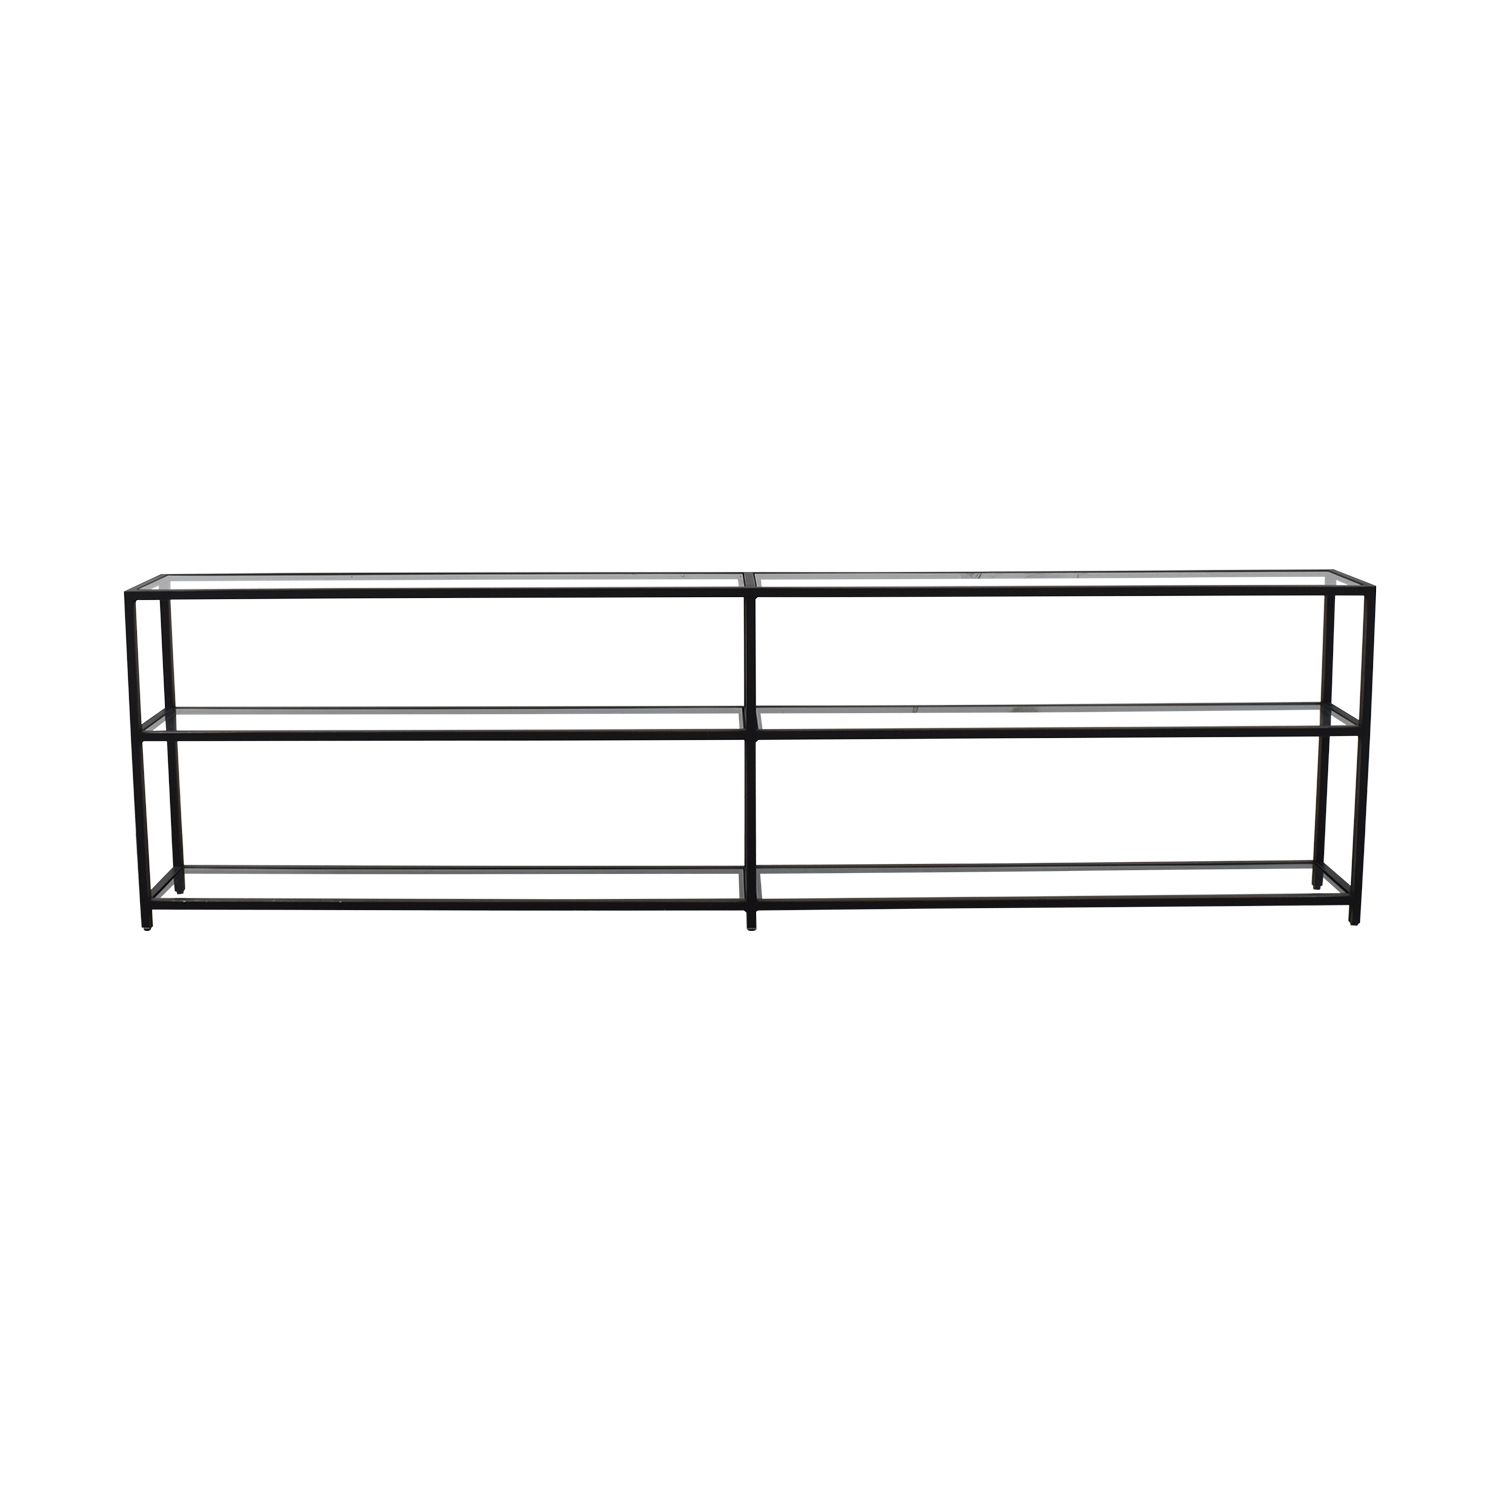 shop Mitchell Gold + Bob Williams Low Bookcase Mitchell Gold + Bob Williams Bookcases & Shelving